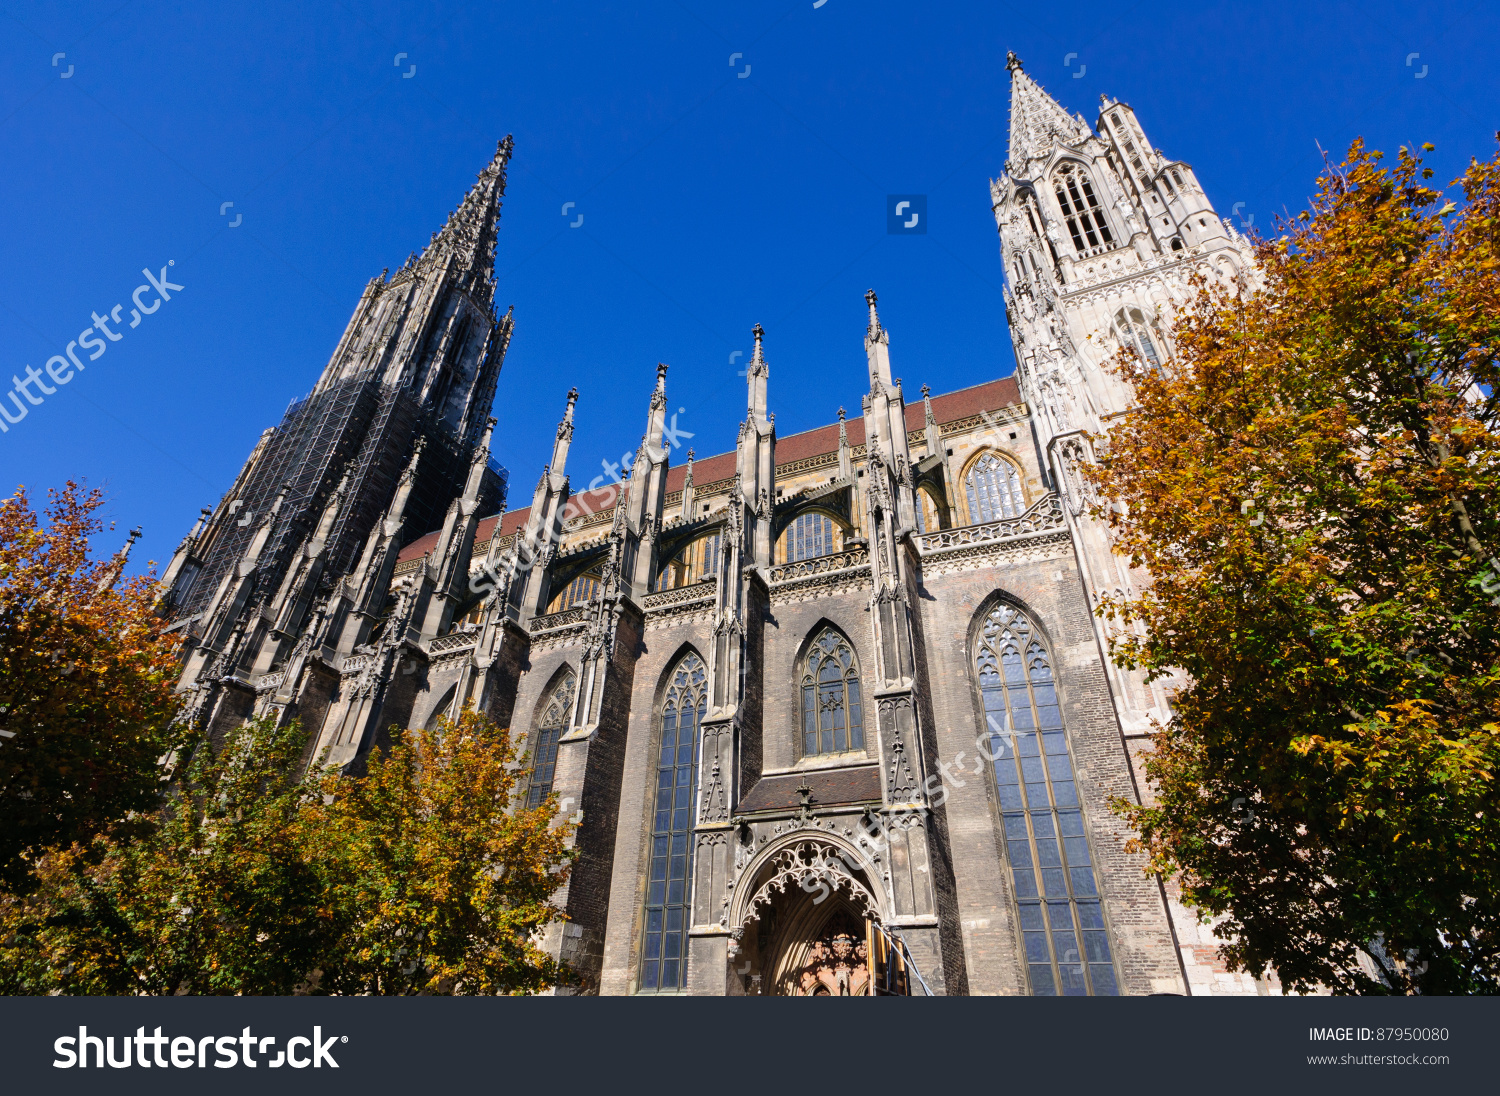 Ulm Cathedral In Germany Stock Photo 87950080 : Shutterstock.